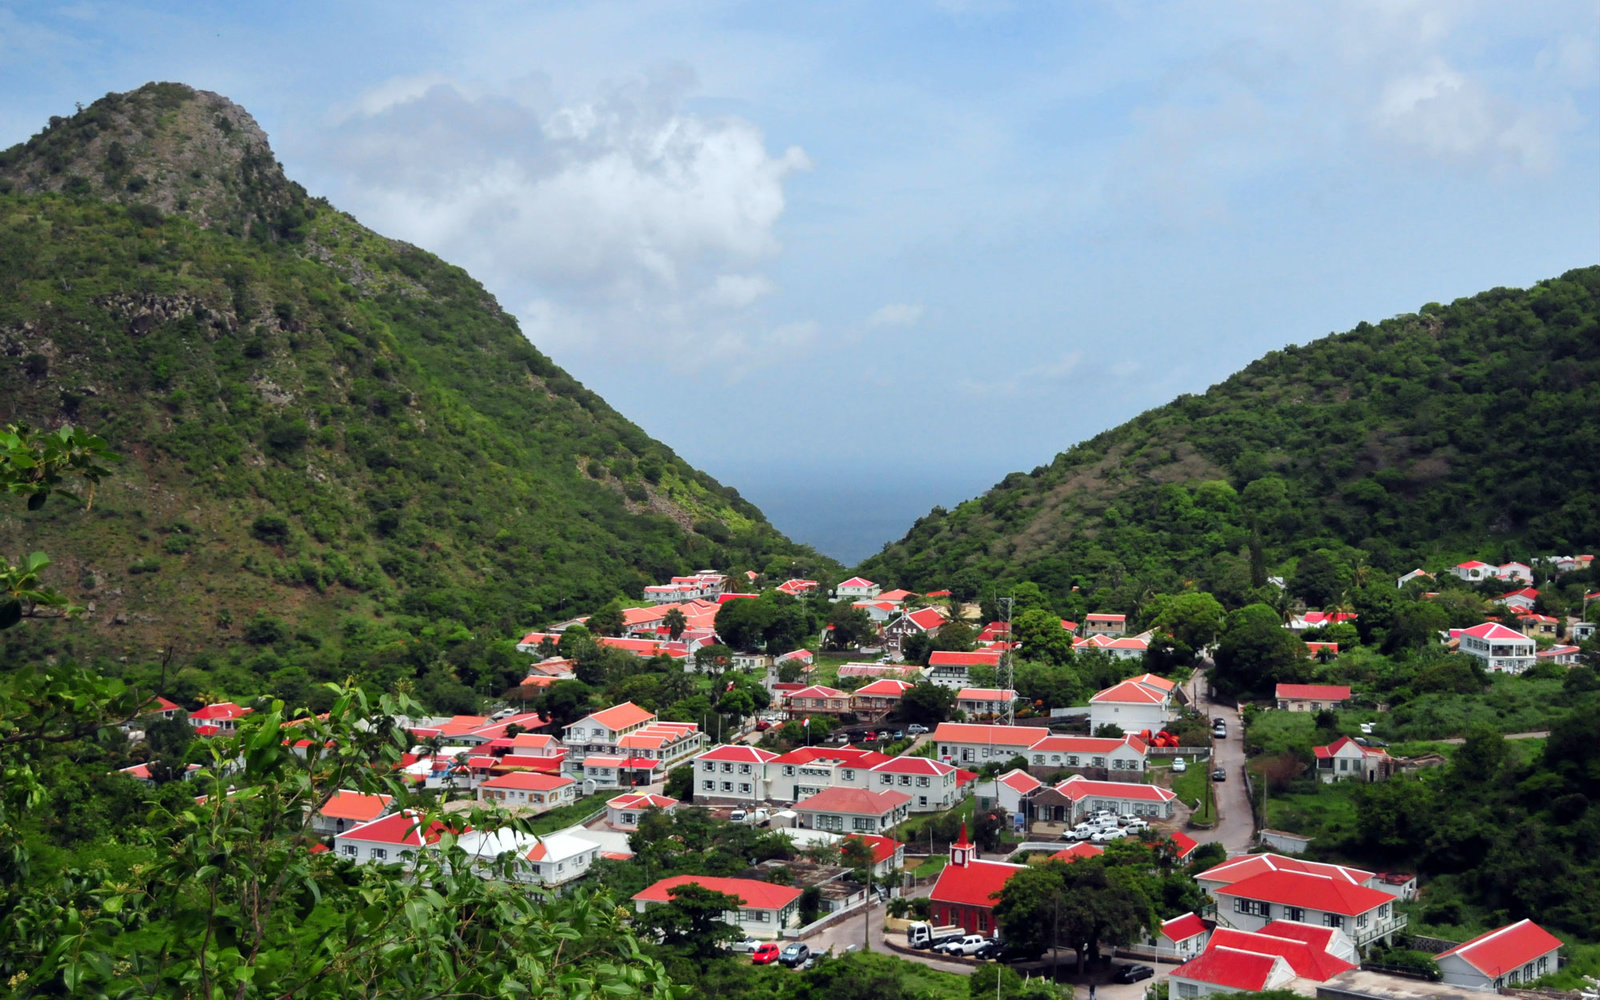 Saba's capital 'The Bottom'